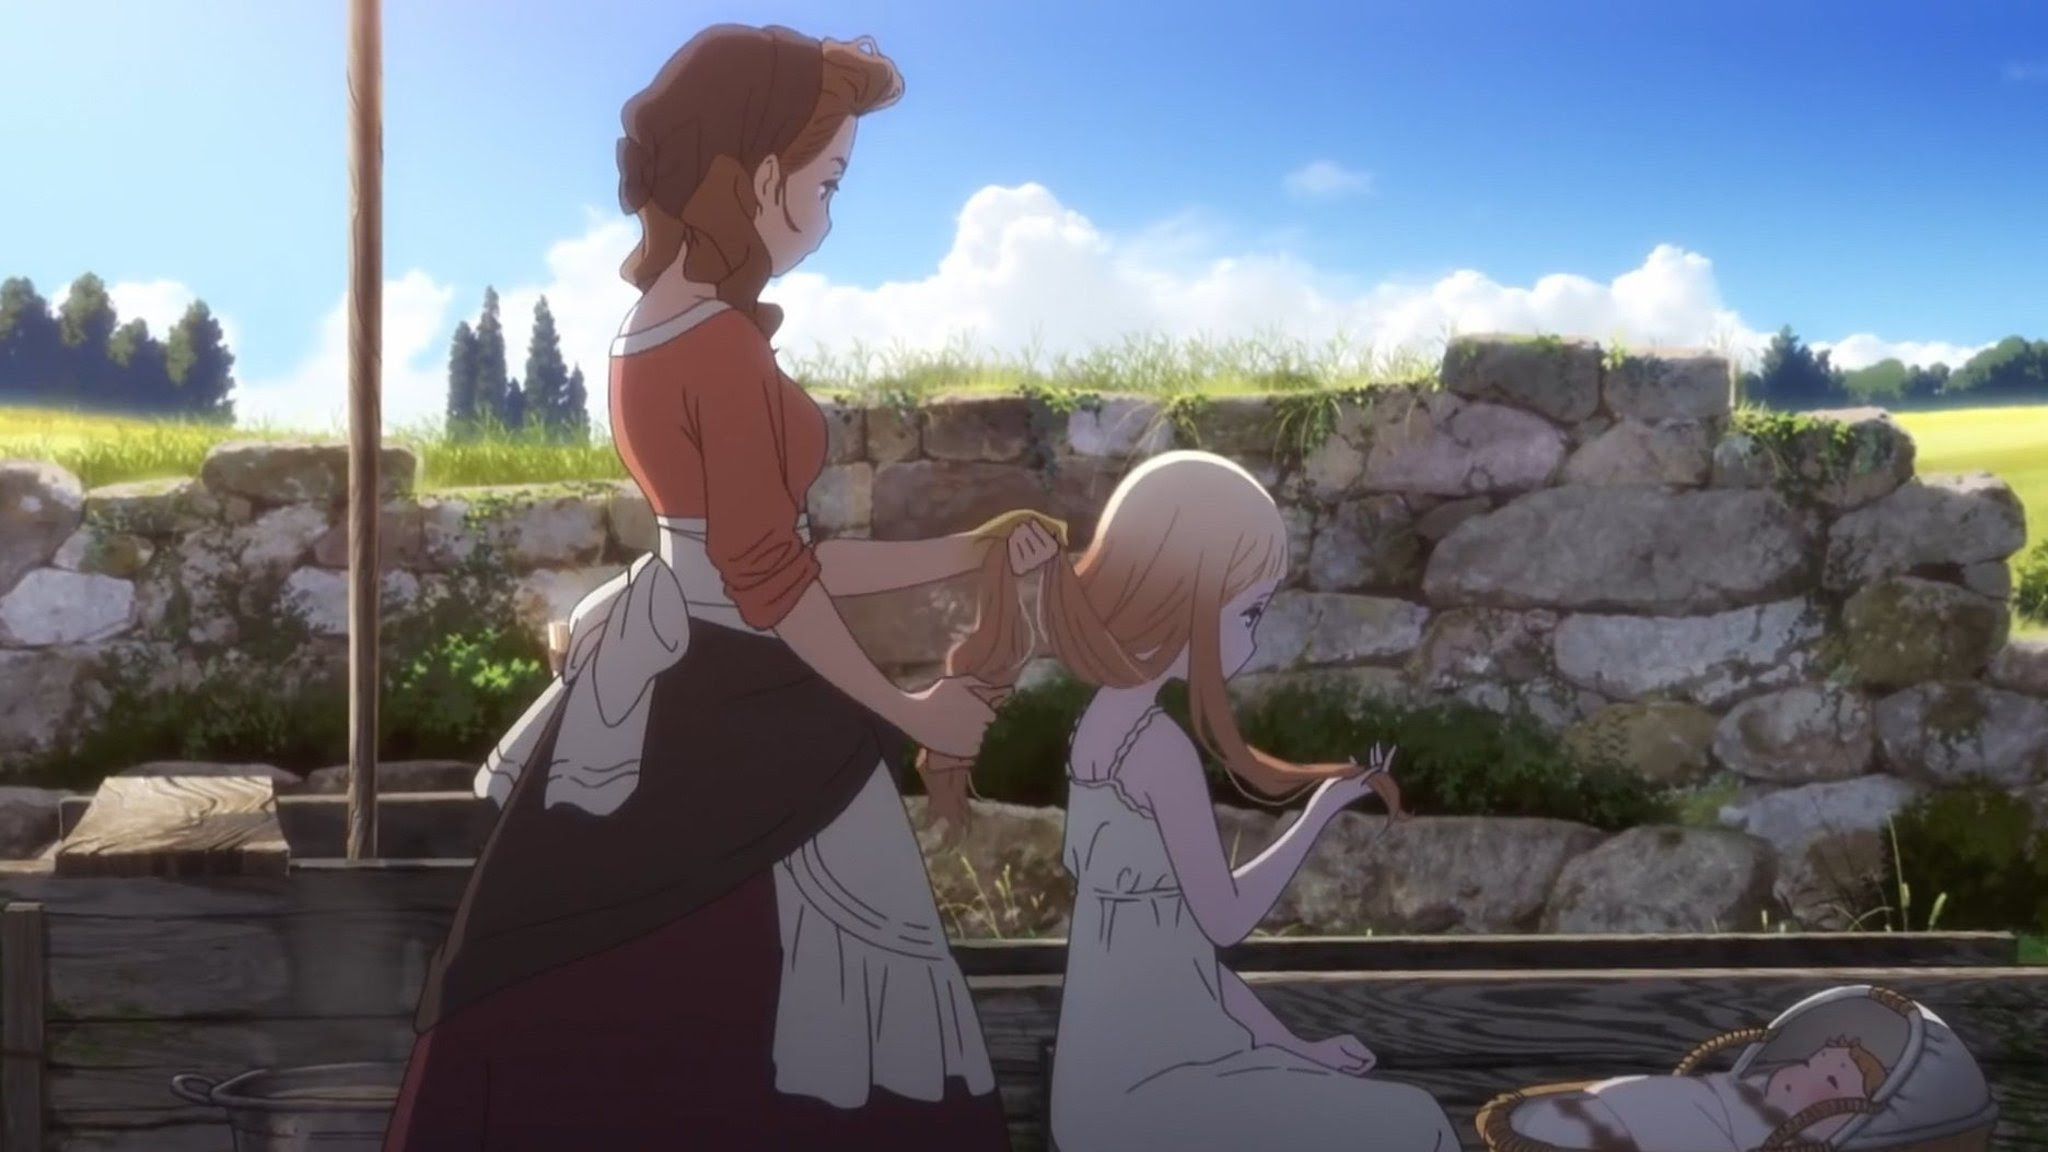 Maquia Japanese Animation Of Sublime Imagery Financial Times